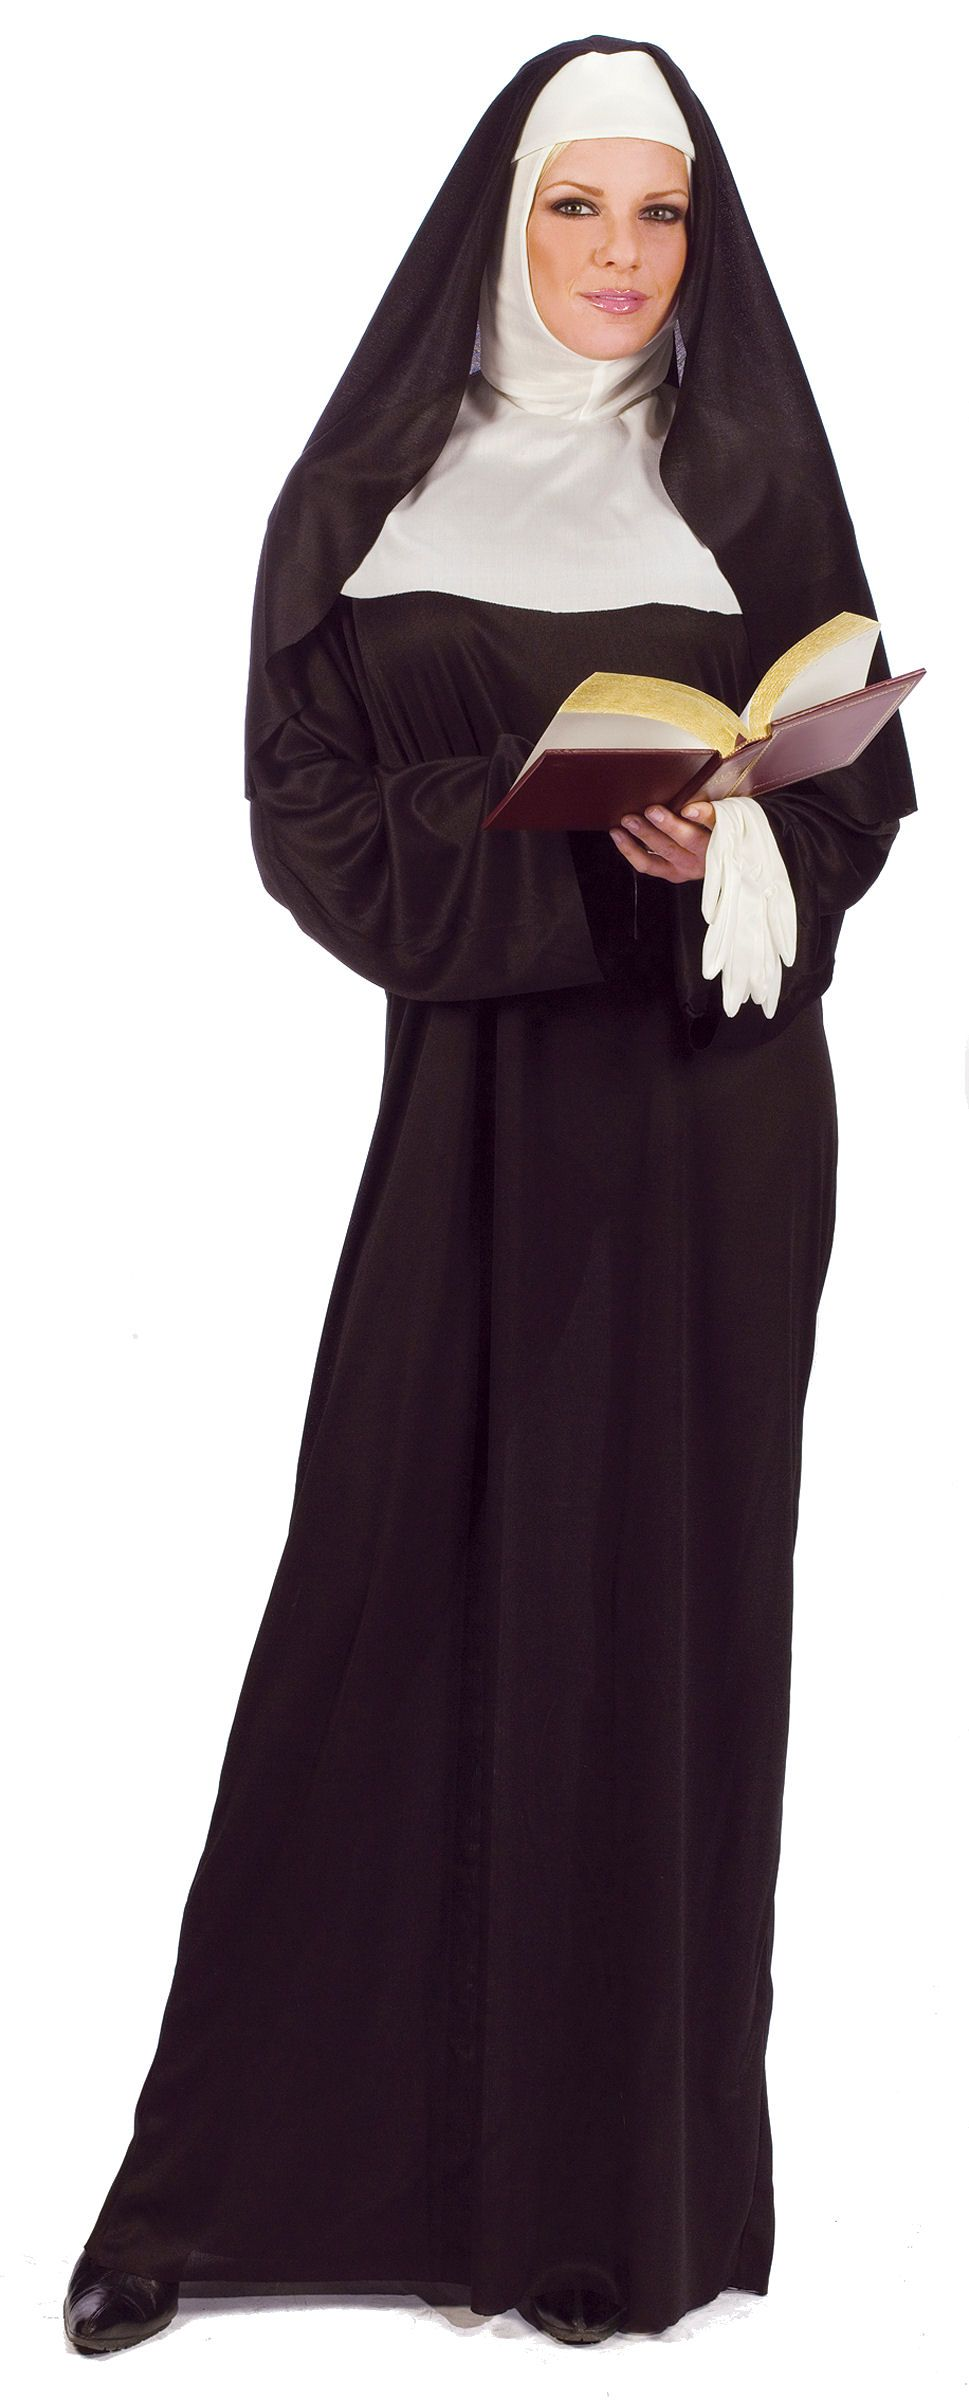 Mother Superior Nun Habit Costume Wear this Nun costume